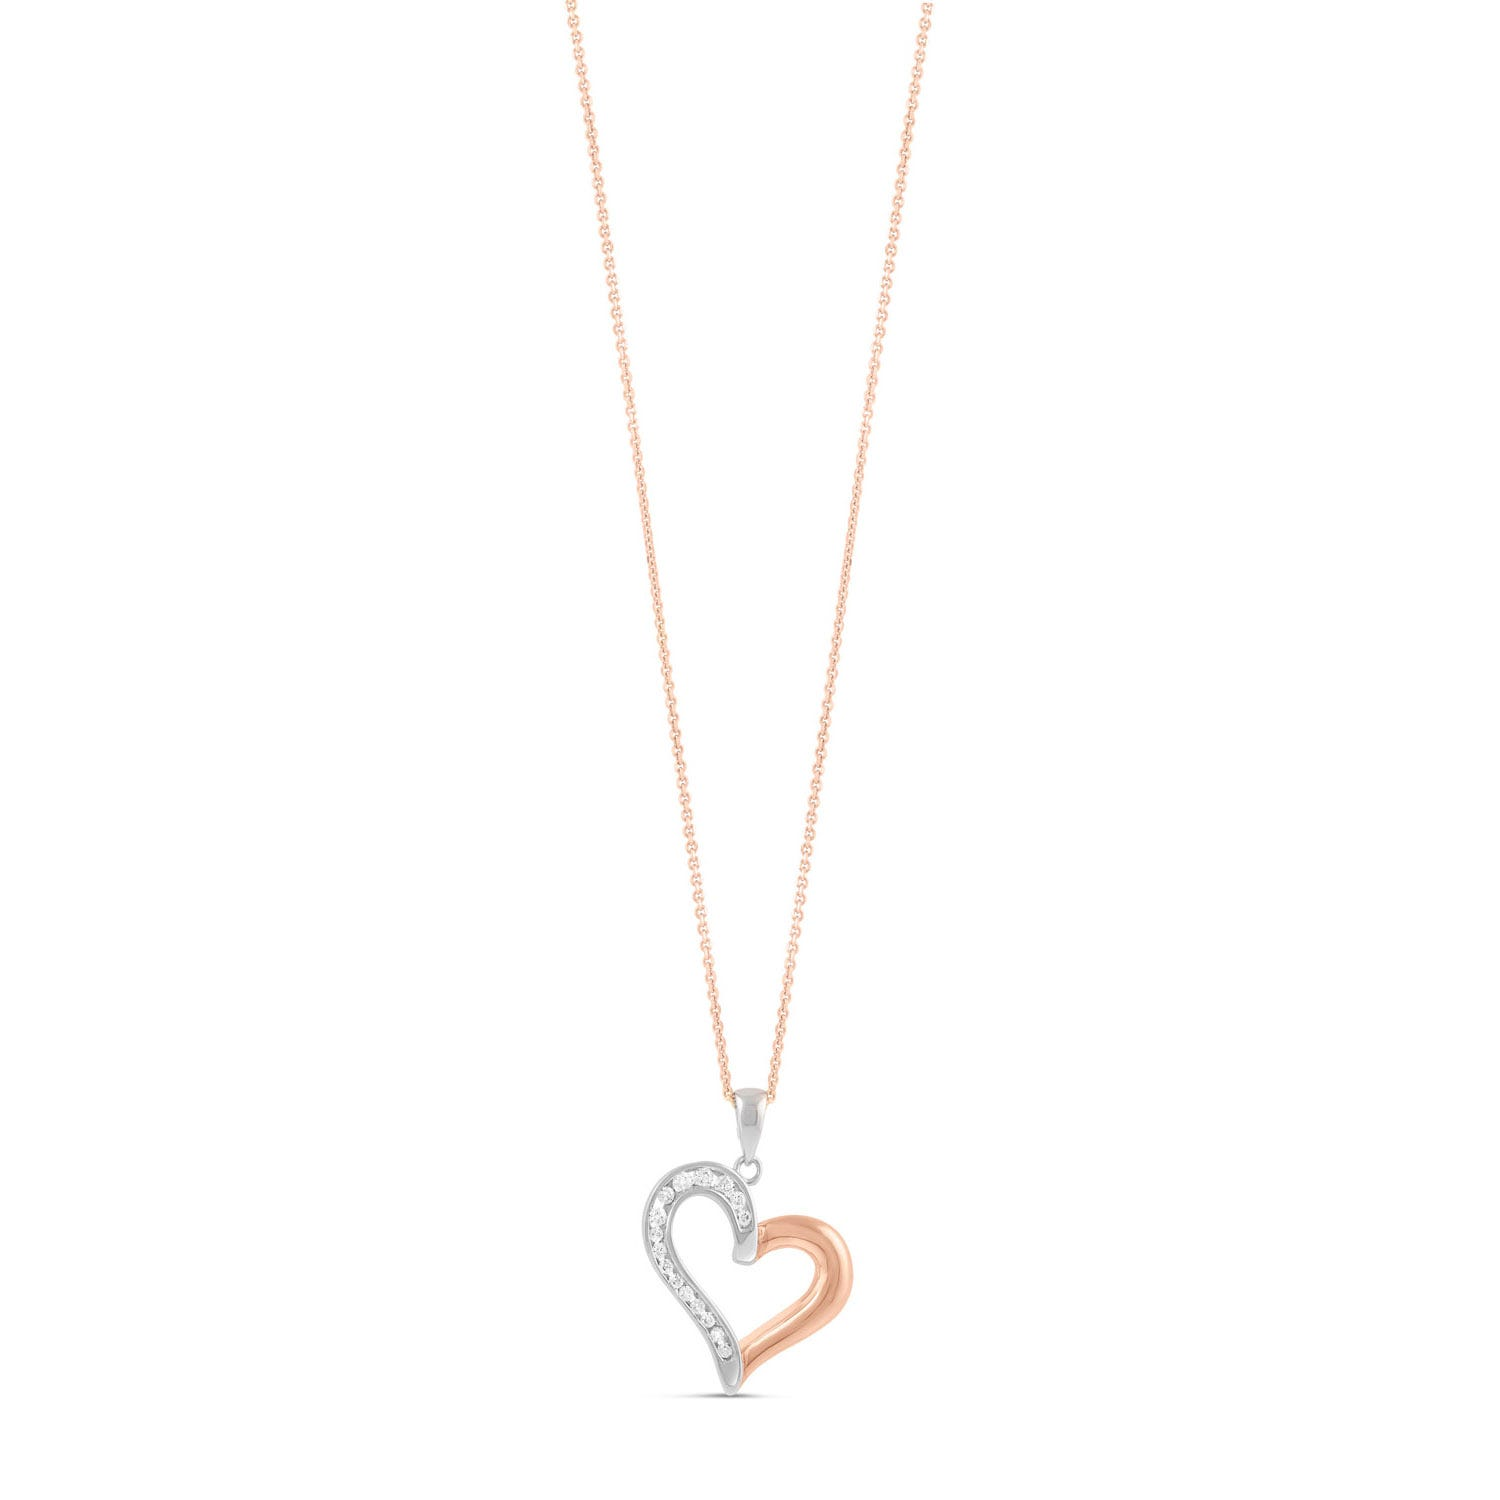 Silver and rose gold-plated large heart pendant